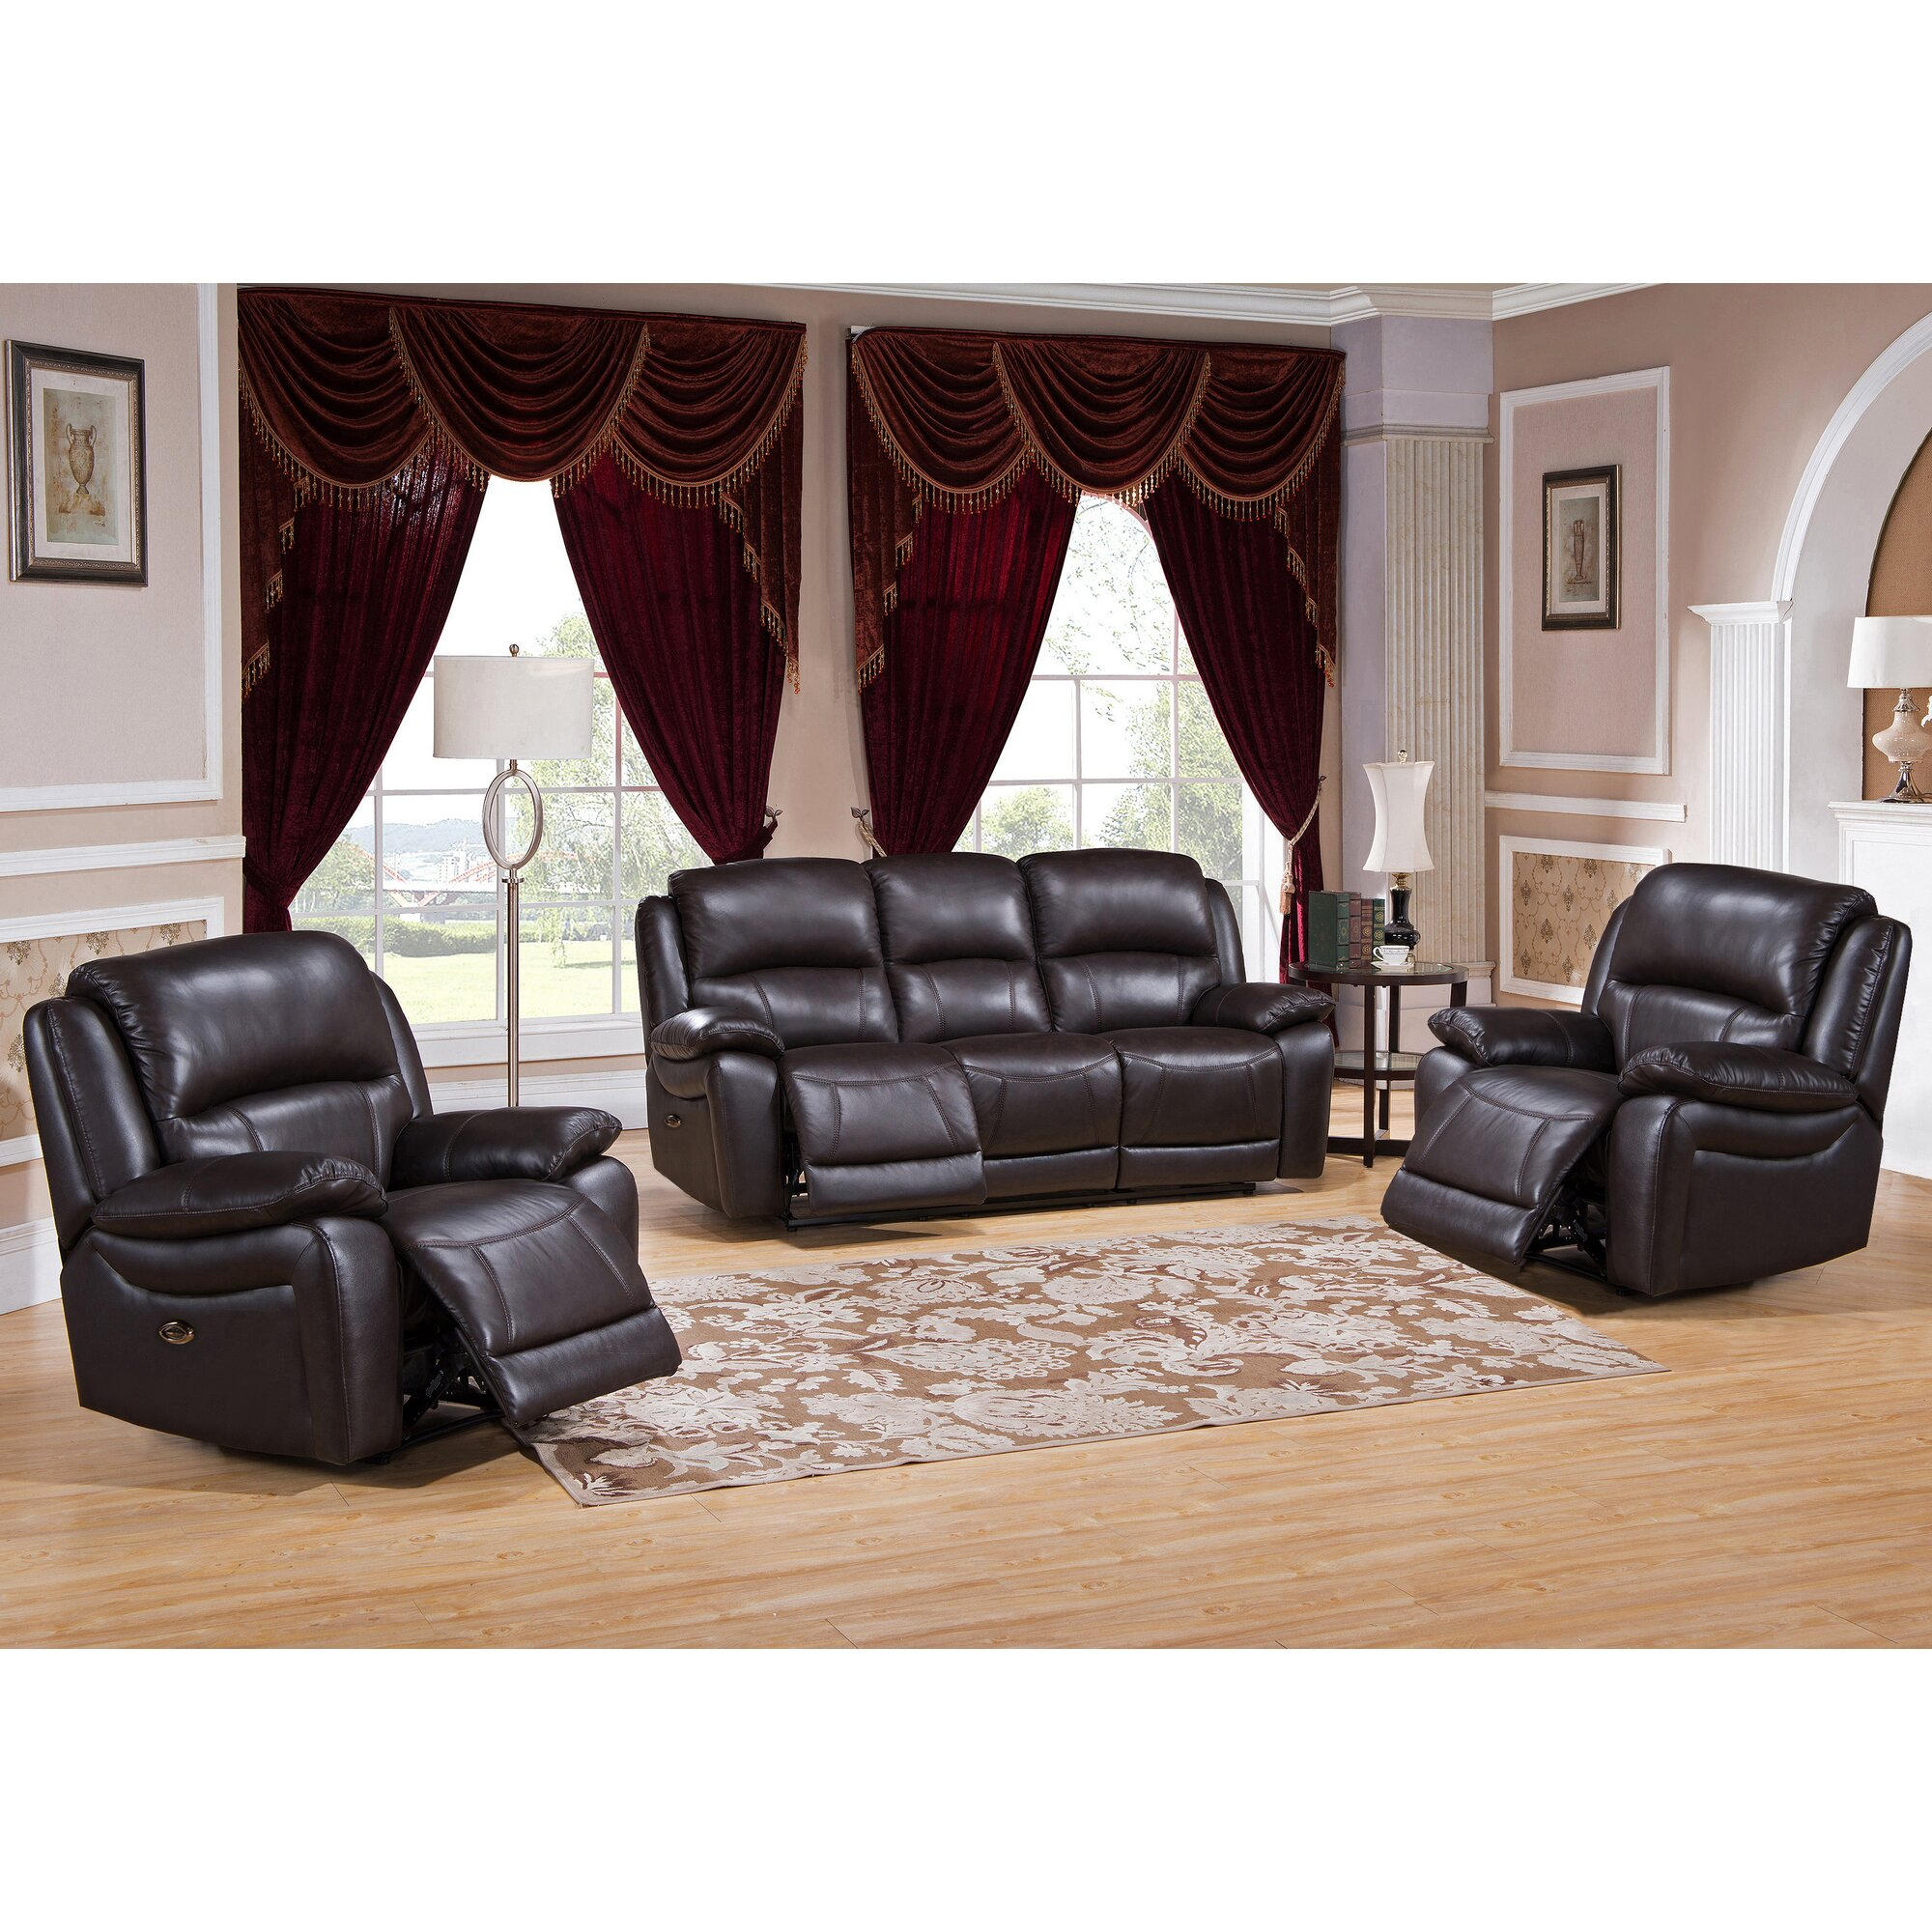 Hydelinebyamax kingston 3 piece leather living room set for 3 piece living room set